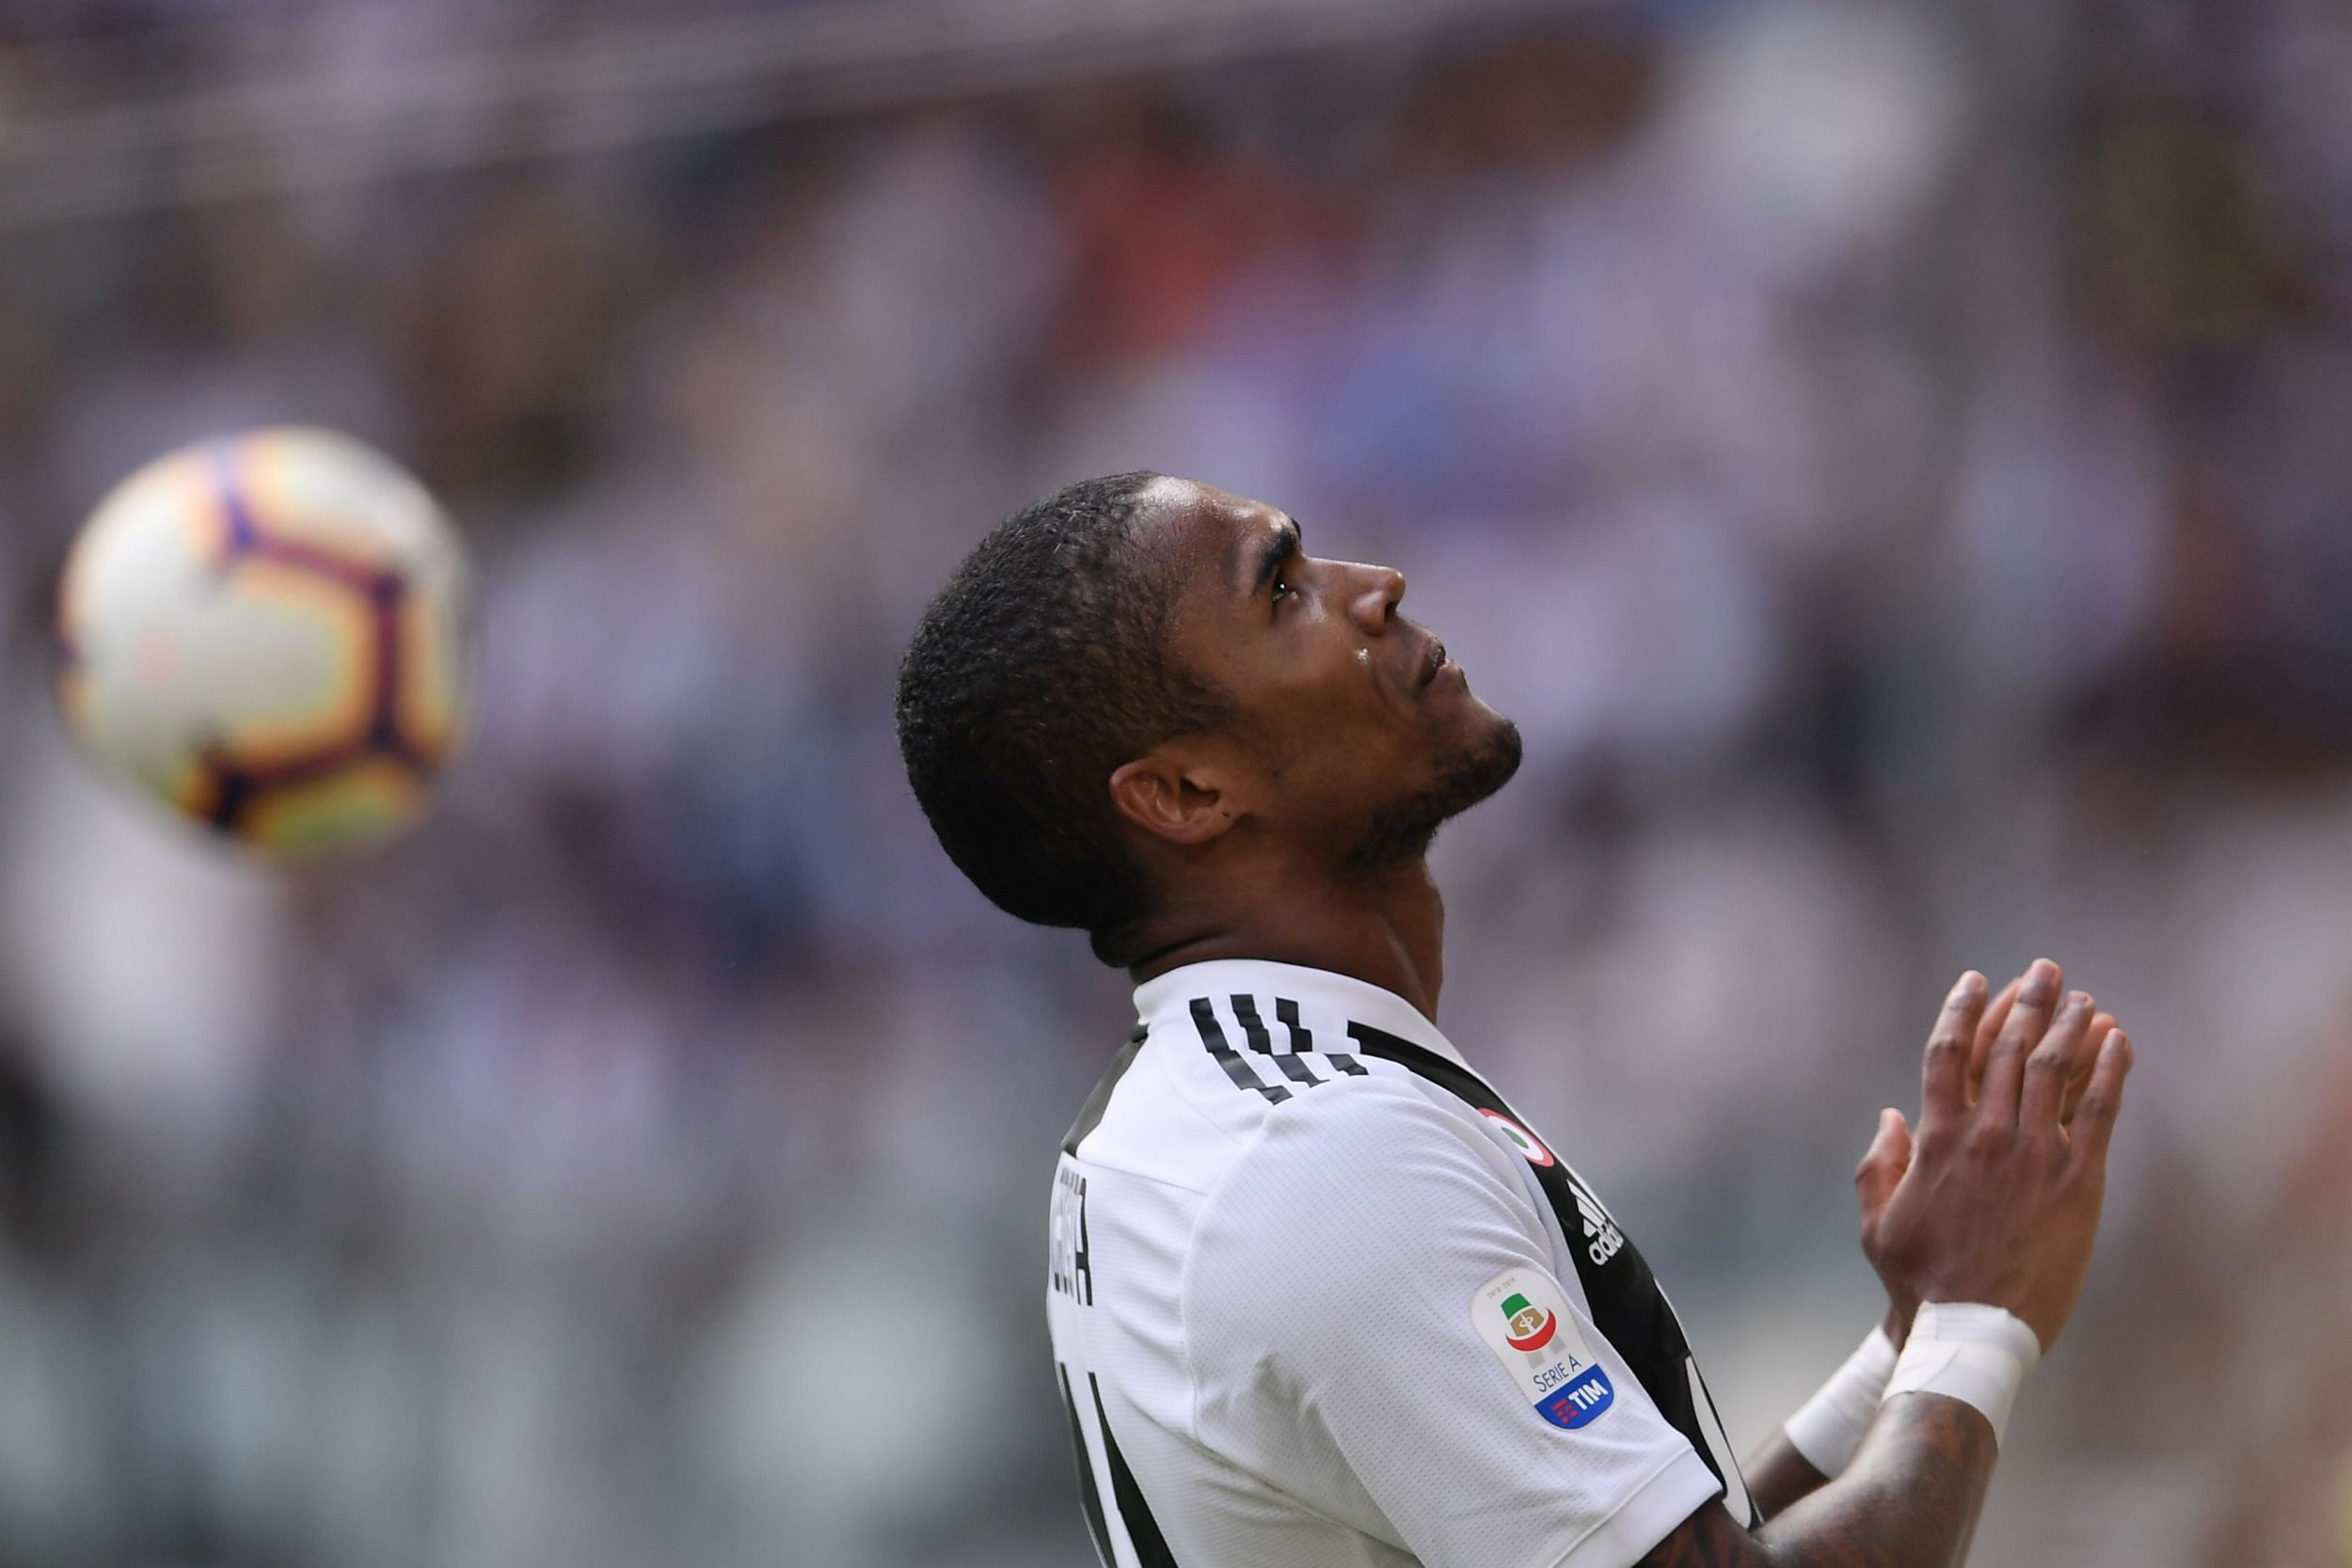 Watch: Douglas Costa sent off for spitting in opposition player's mouth in Juventus vs Sassuolo